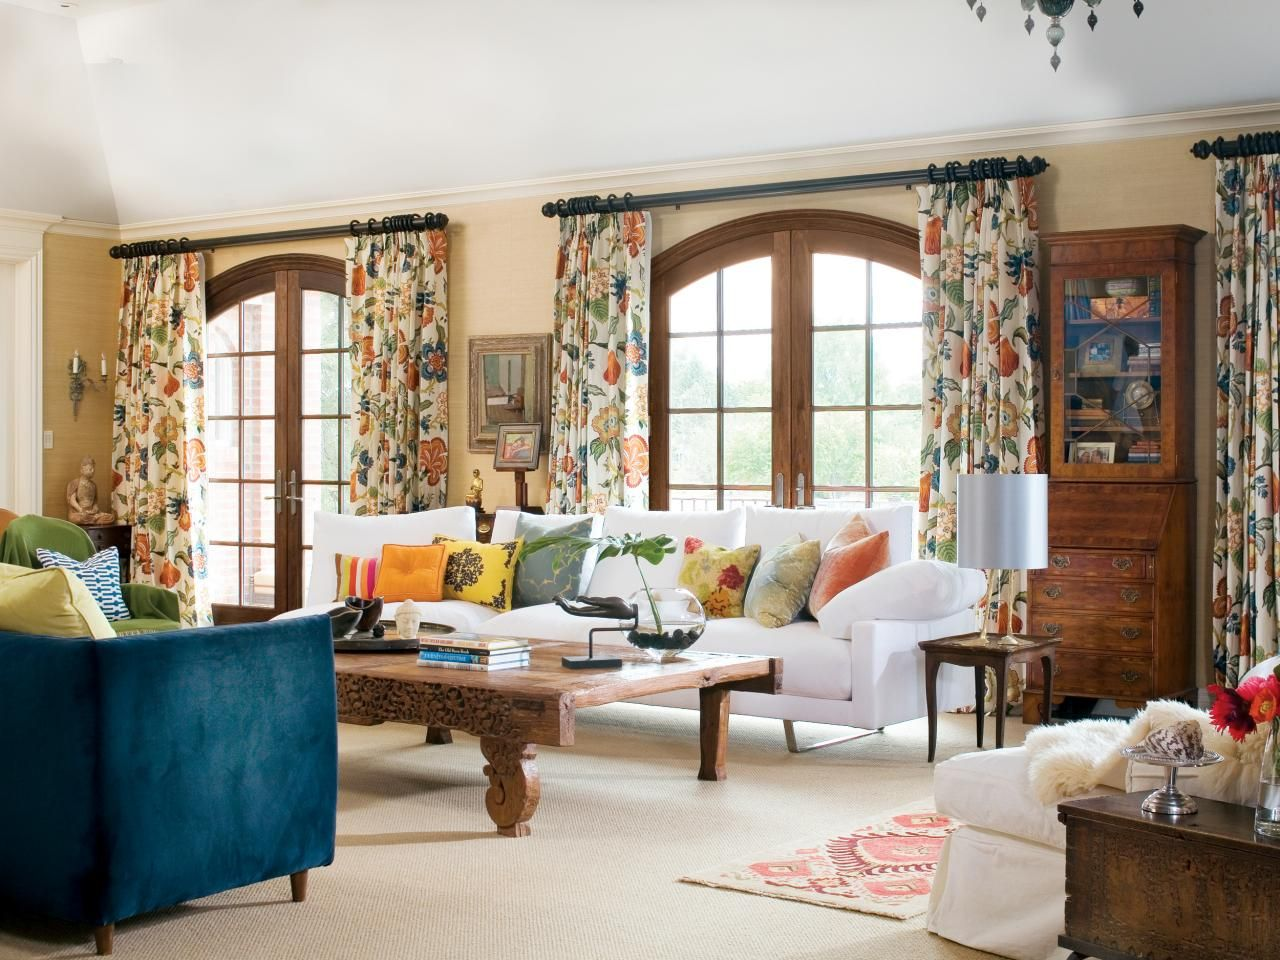 These Patterned Floral Drapes Pull Accents From All Over The Living Room And Compliment French